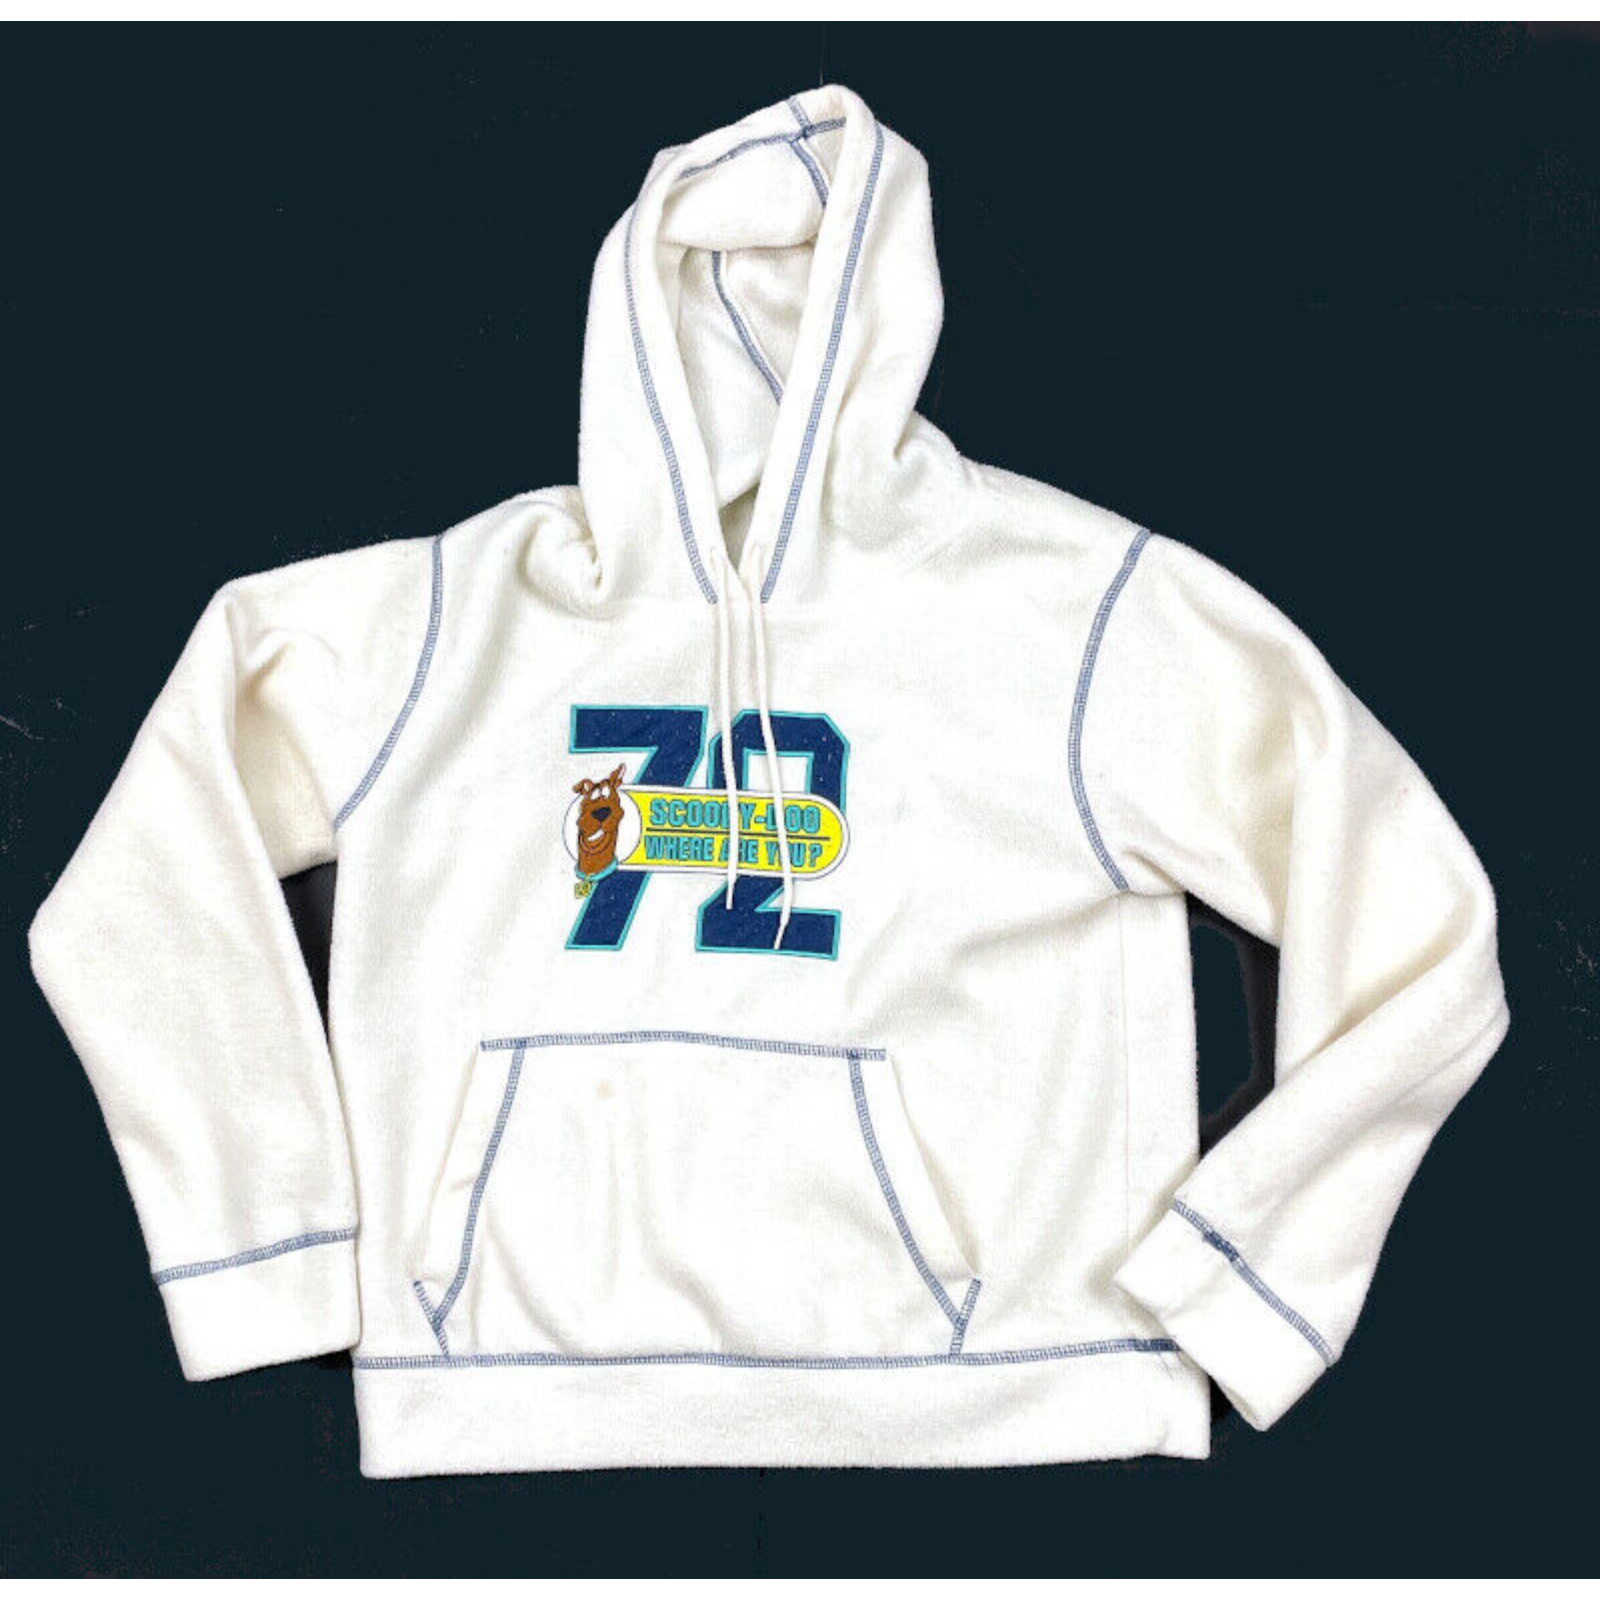 Product Image 1 - 2003 Scooby-Doo White Embroidered Fleece